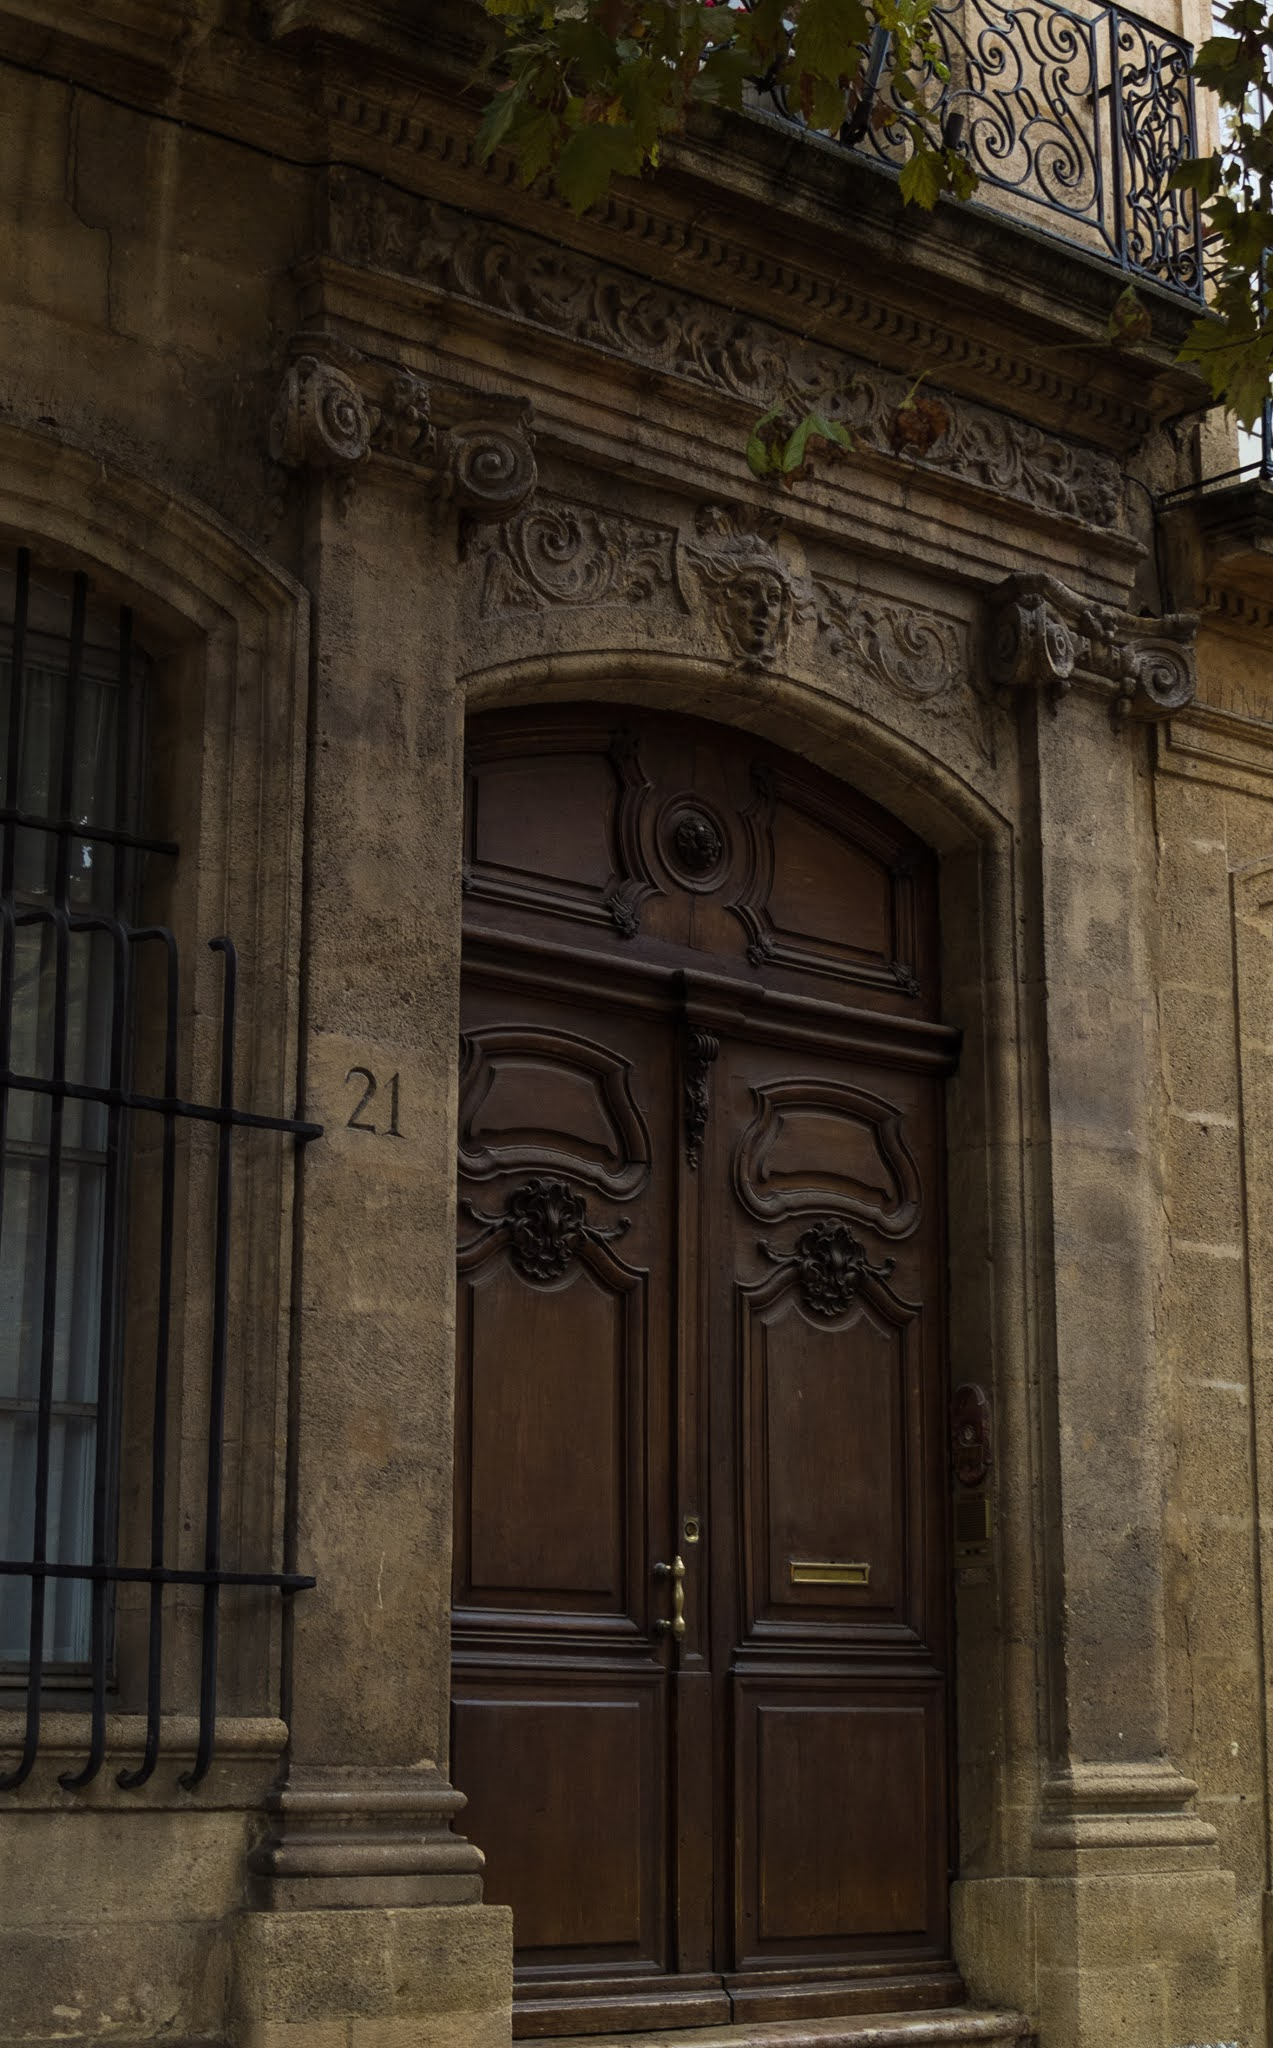 Tall timber doorway on Cours Mirabeau in Aix-en-Provence, Southern France.